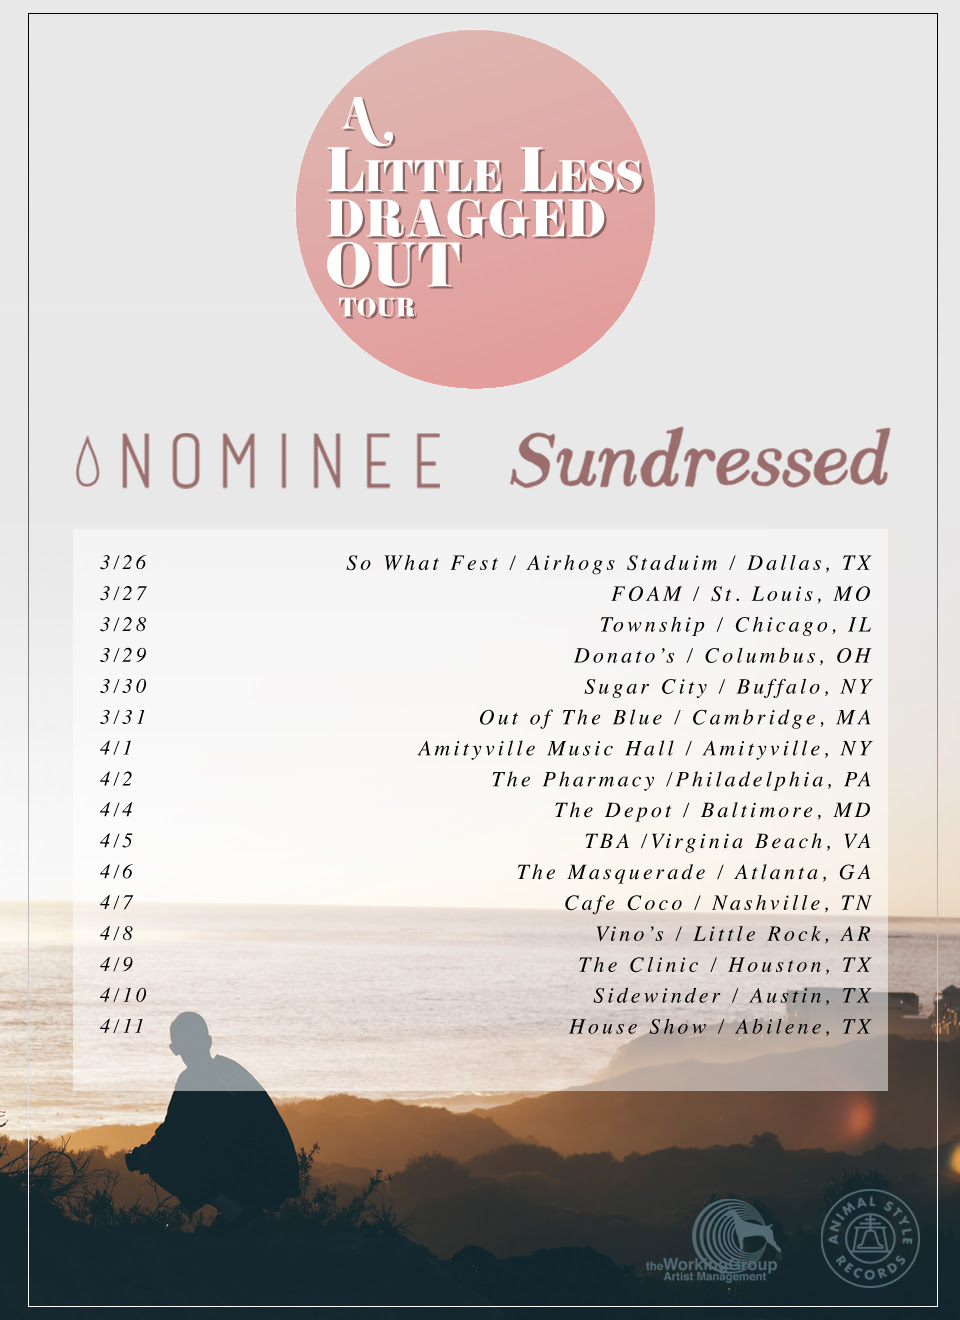 sundressed a little less dragged out tour